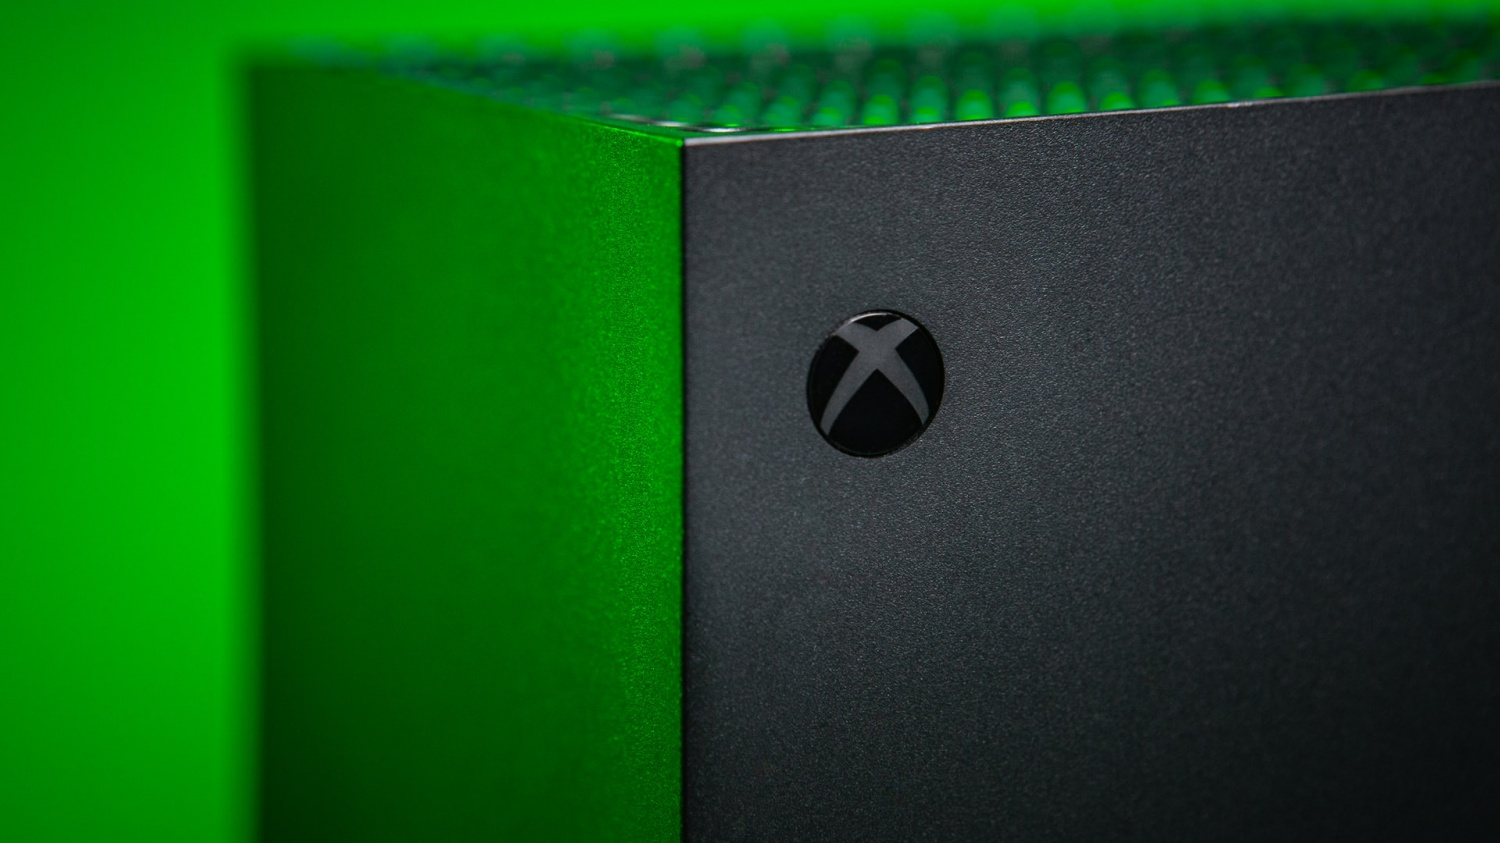 Jeff Grubb: Xbox Live Gold Will Be 'Going Away at Some Point' [REPORT]